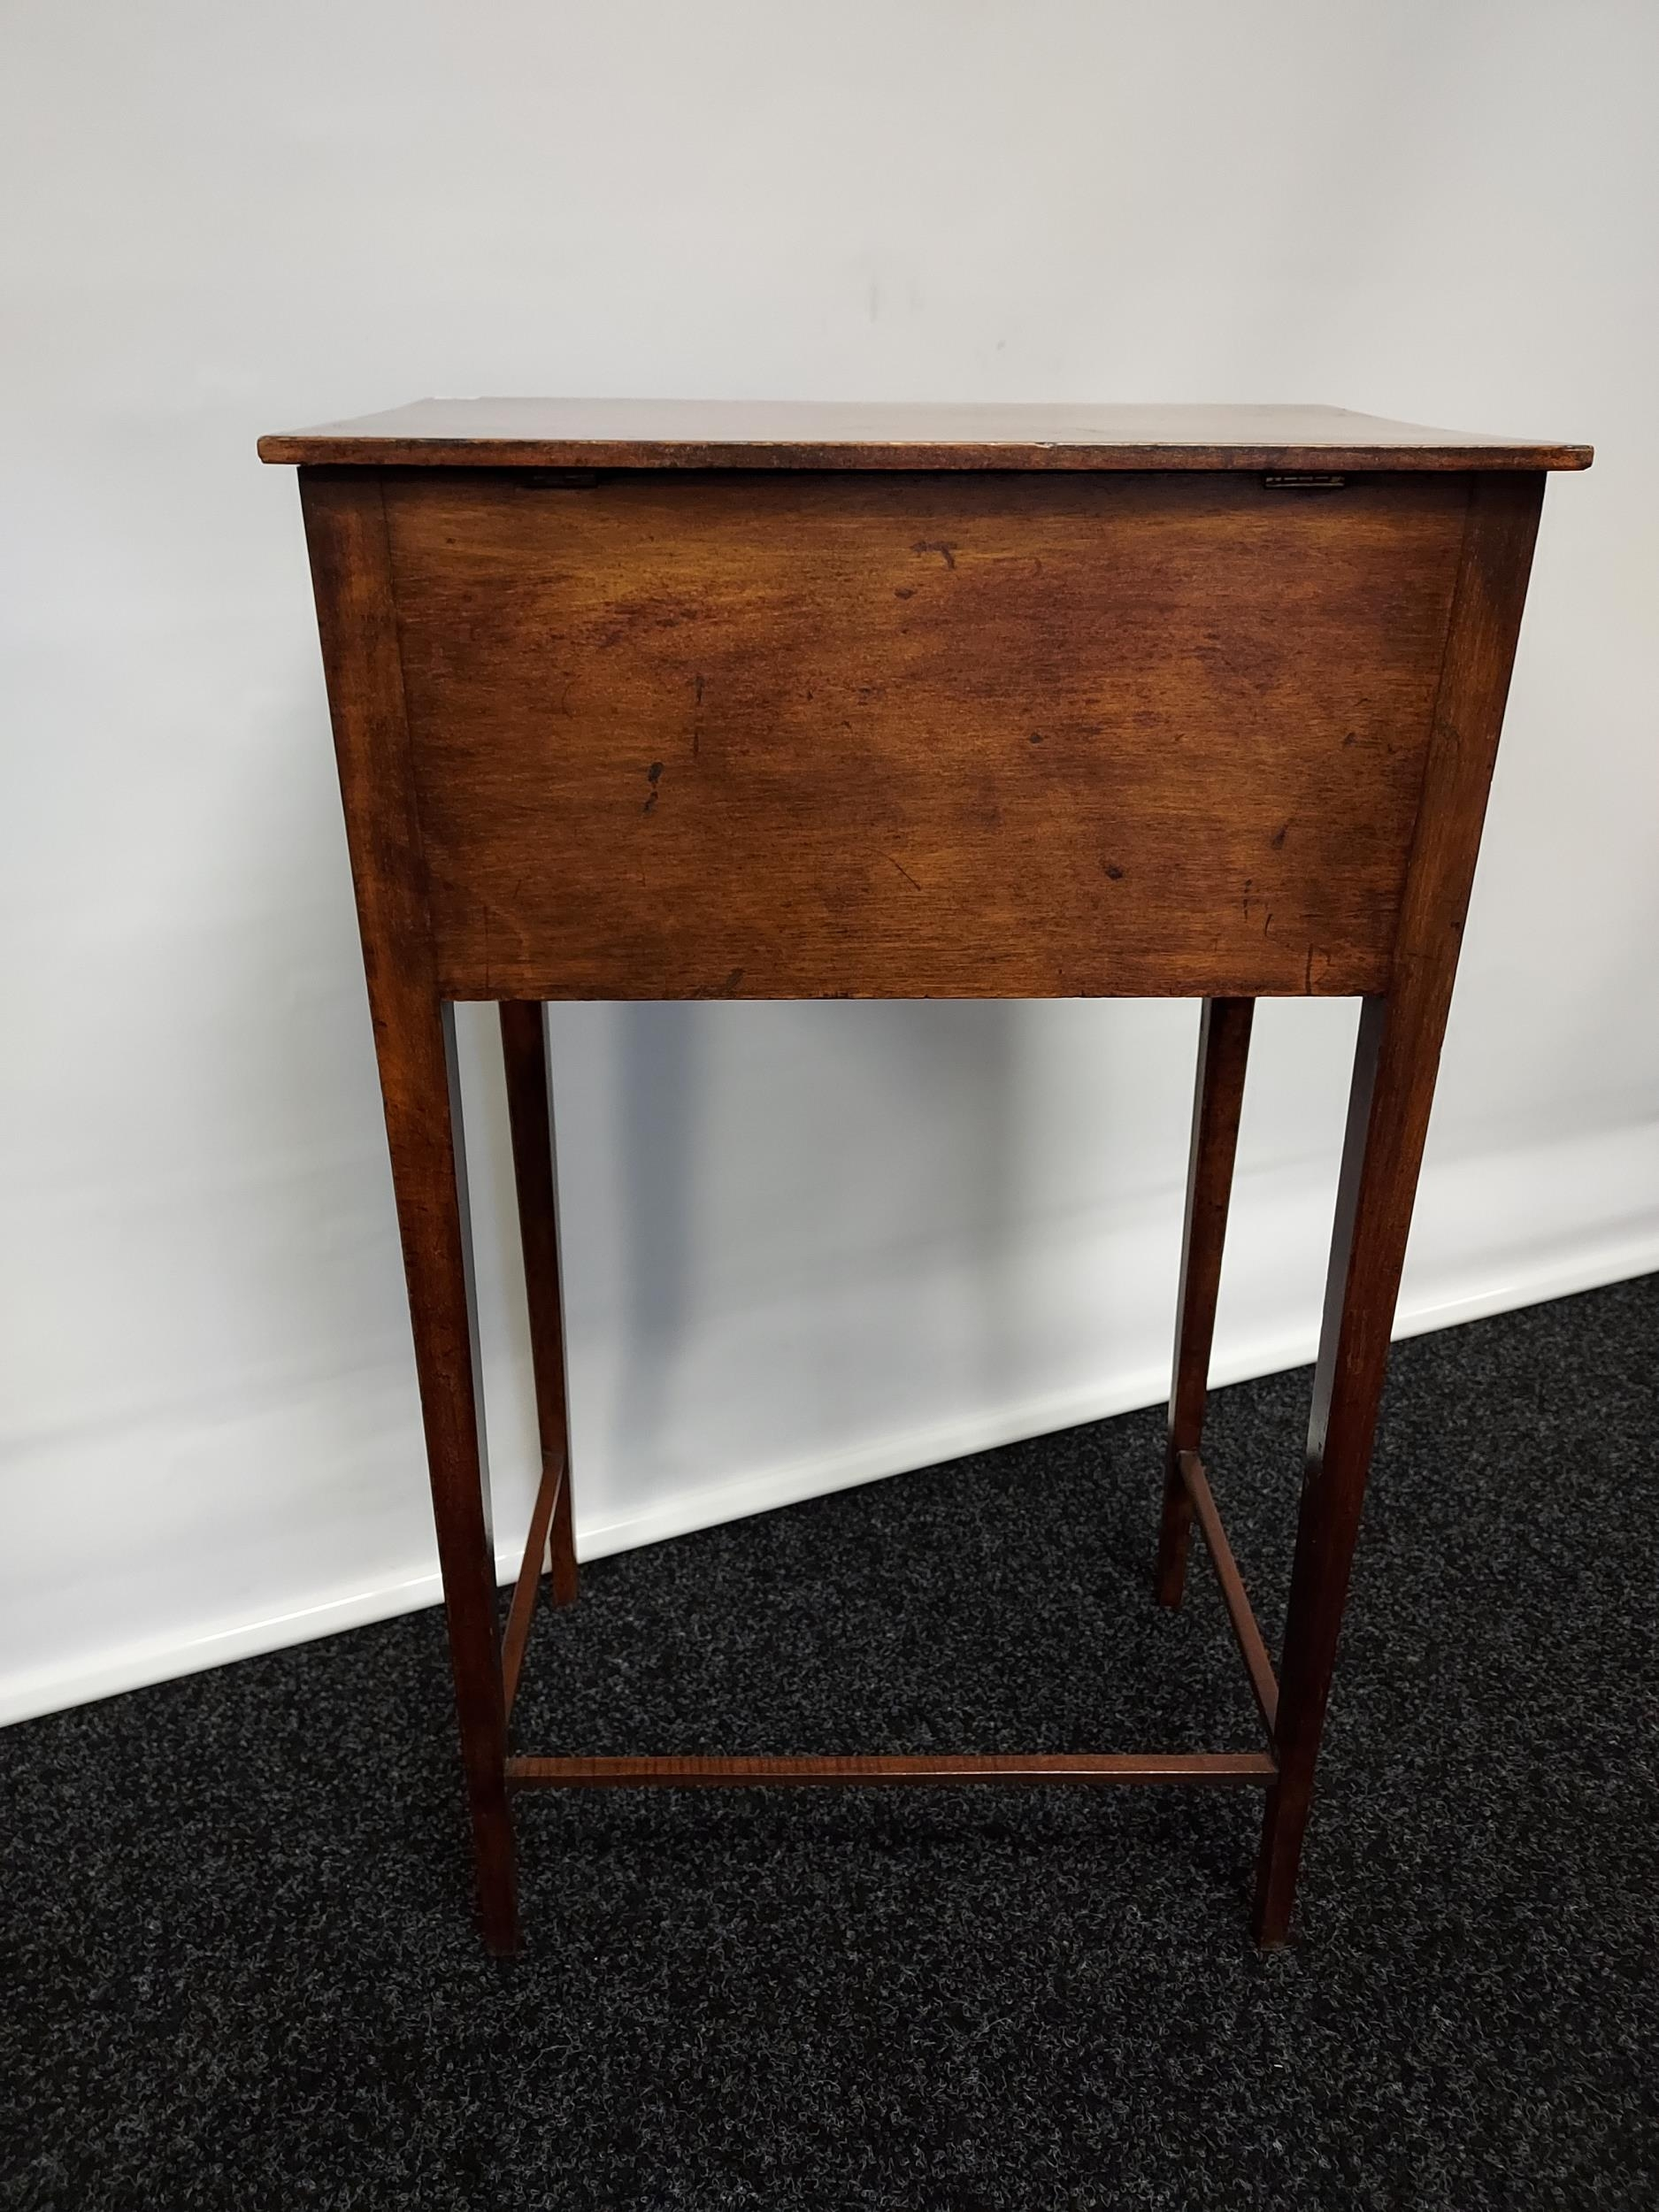 Georgian mahogany lift top console table, one centre drawer under two false drawers, raised on - Image 7 of 7